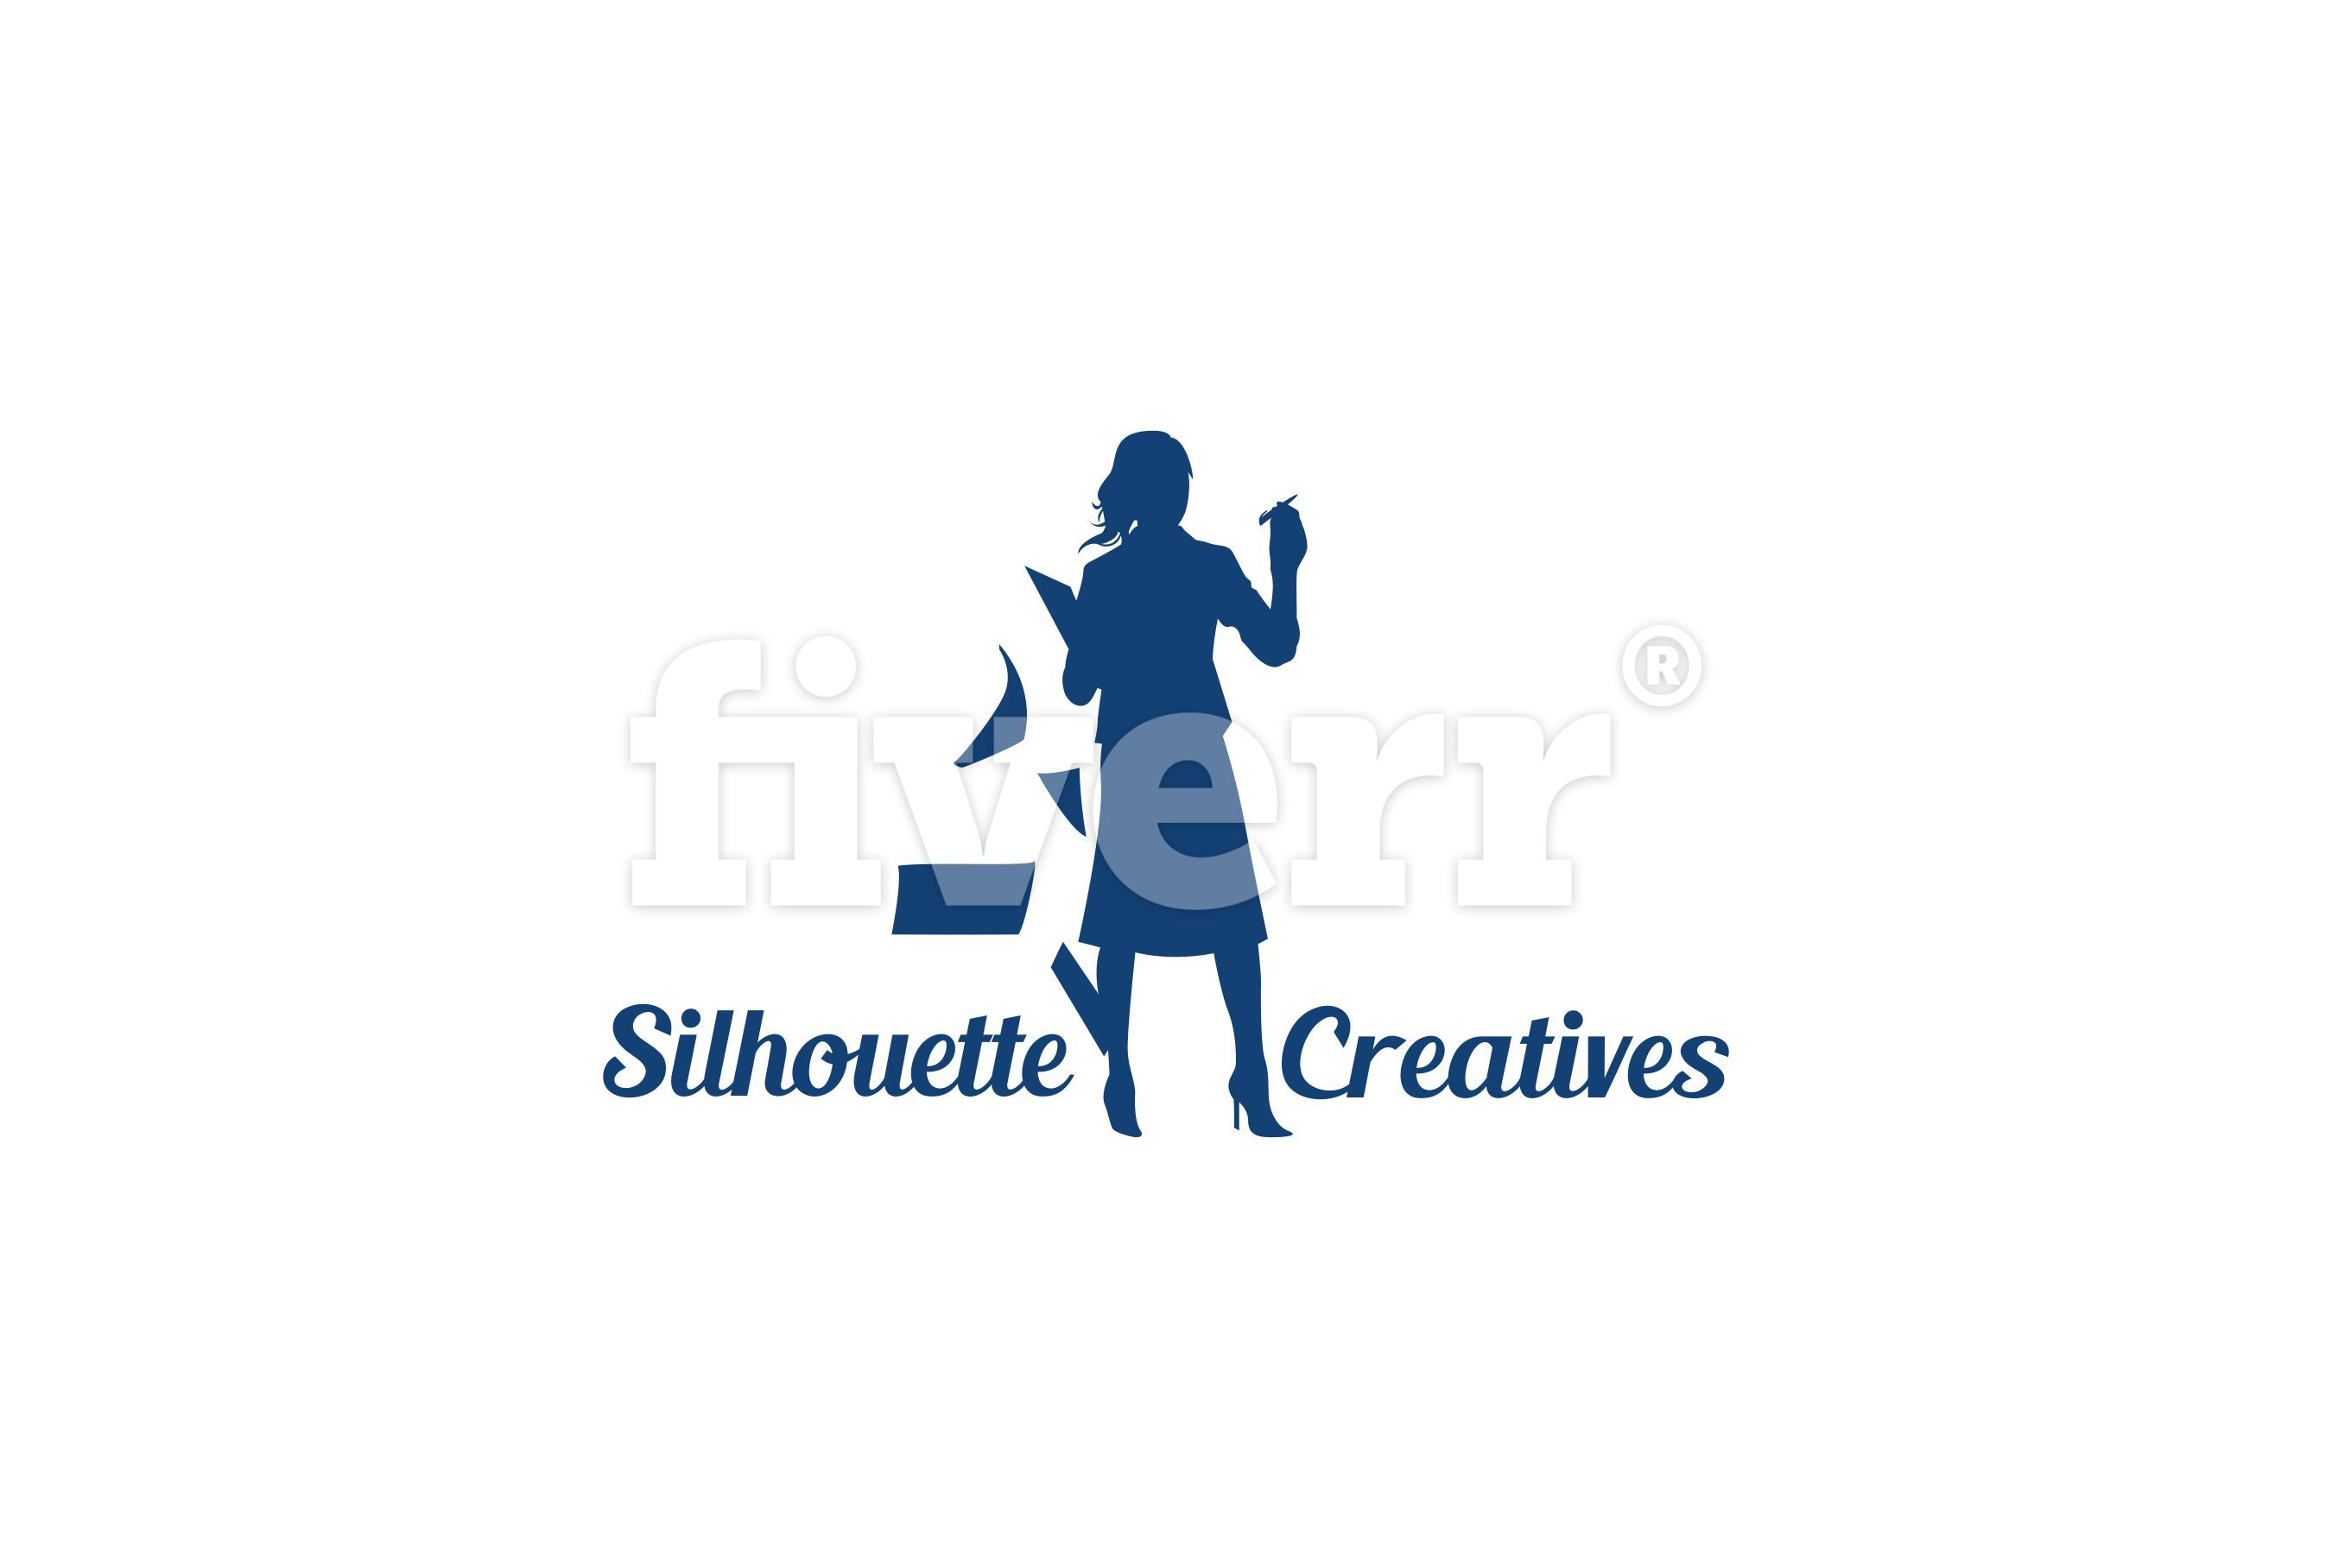 Silhouette_Creativecdr_2